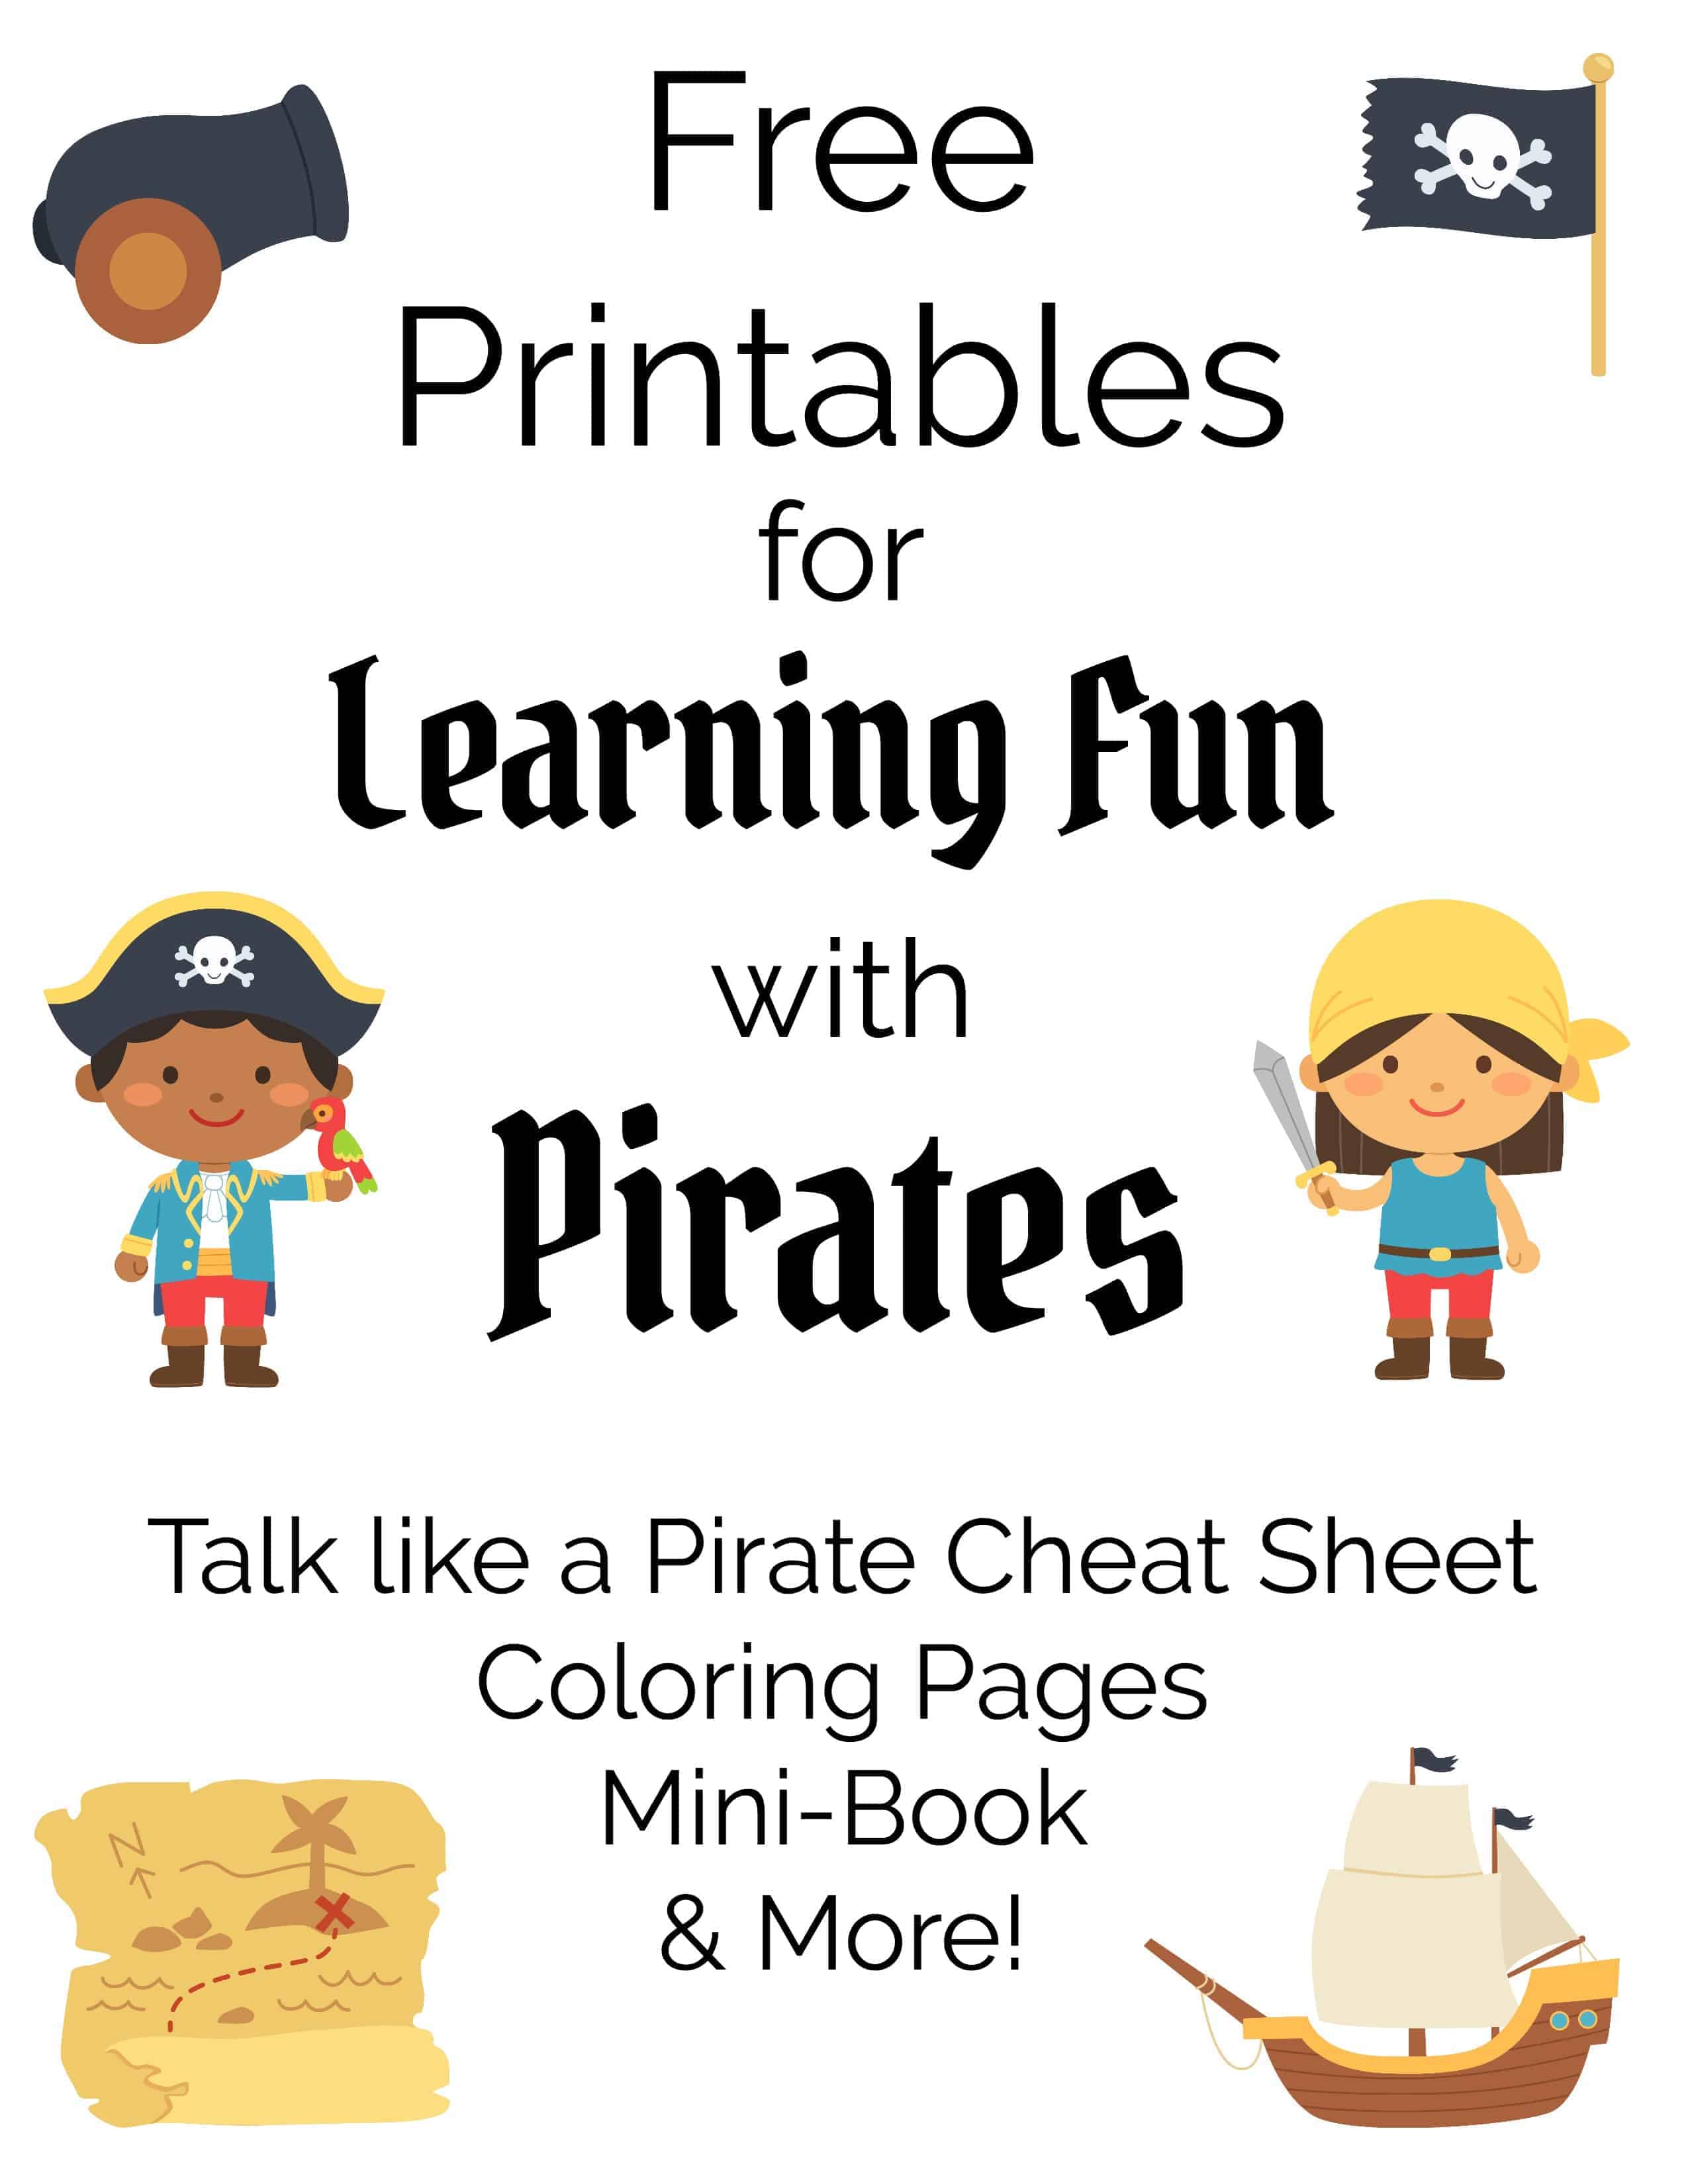 Learning Fun With Pirates